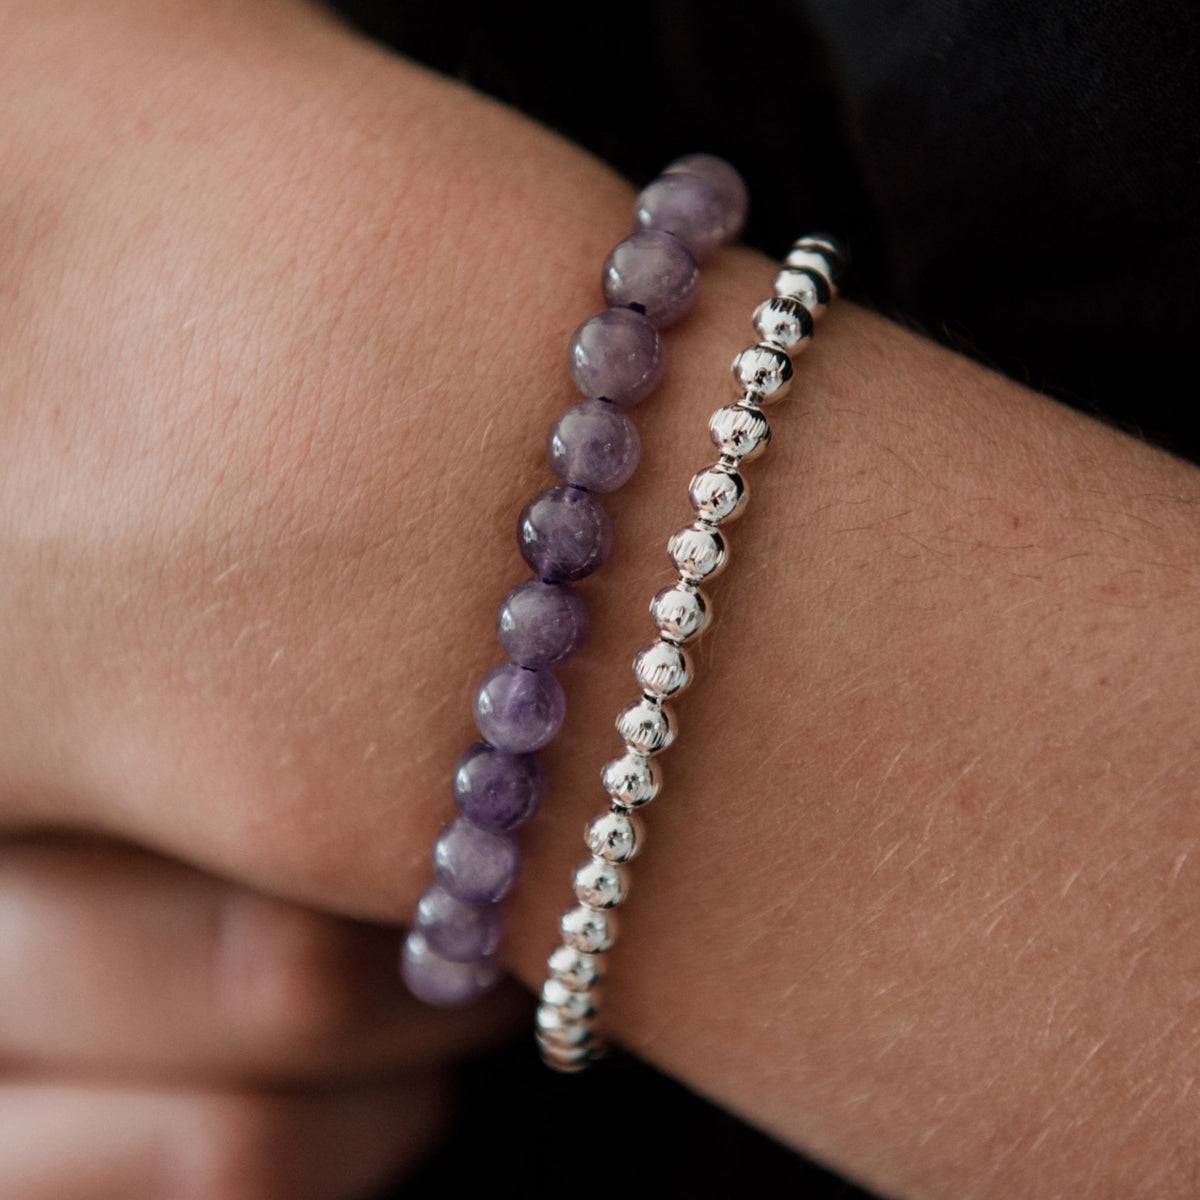 Women's Natural Stone Bracelets (assorted styles)